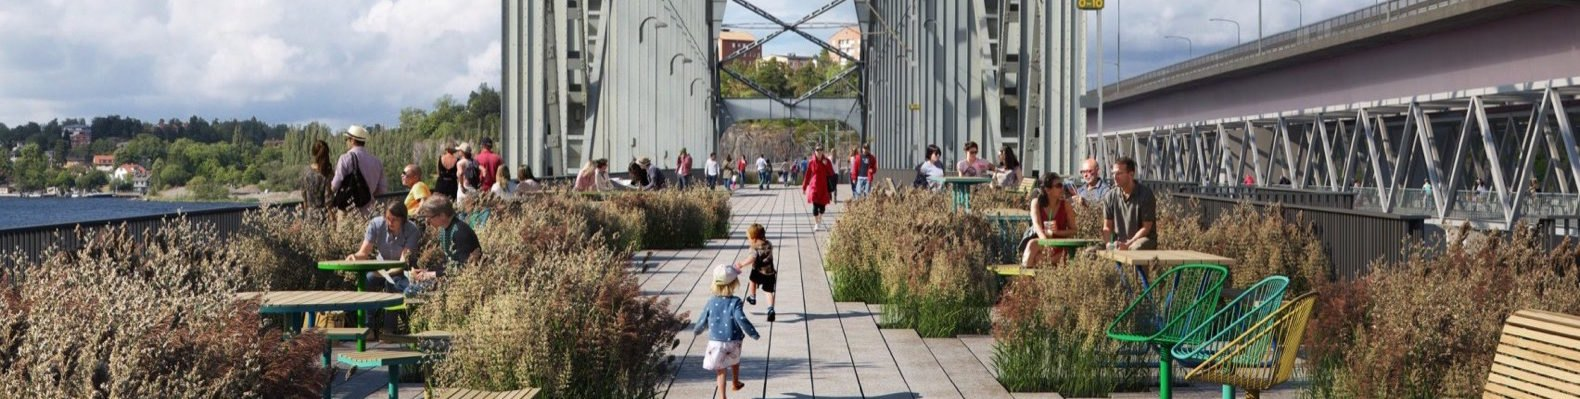 rendering of park with seats and plants on a bridge